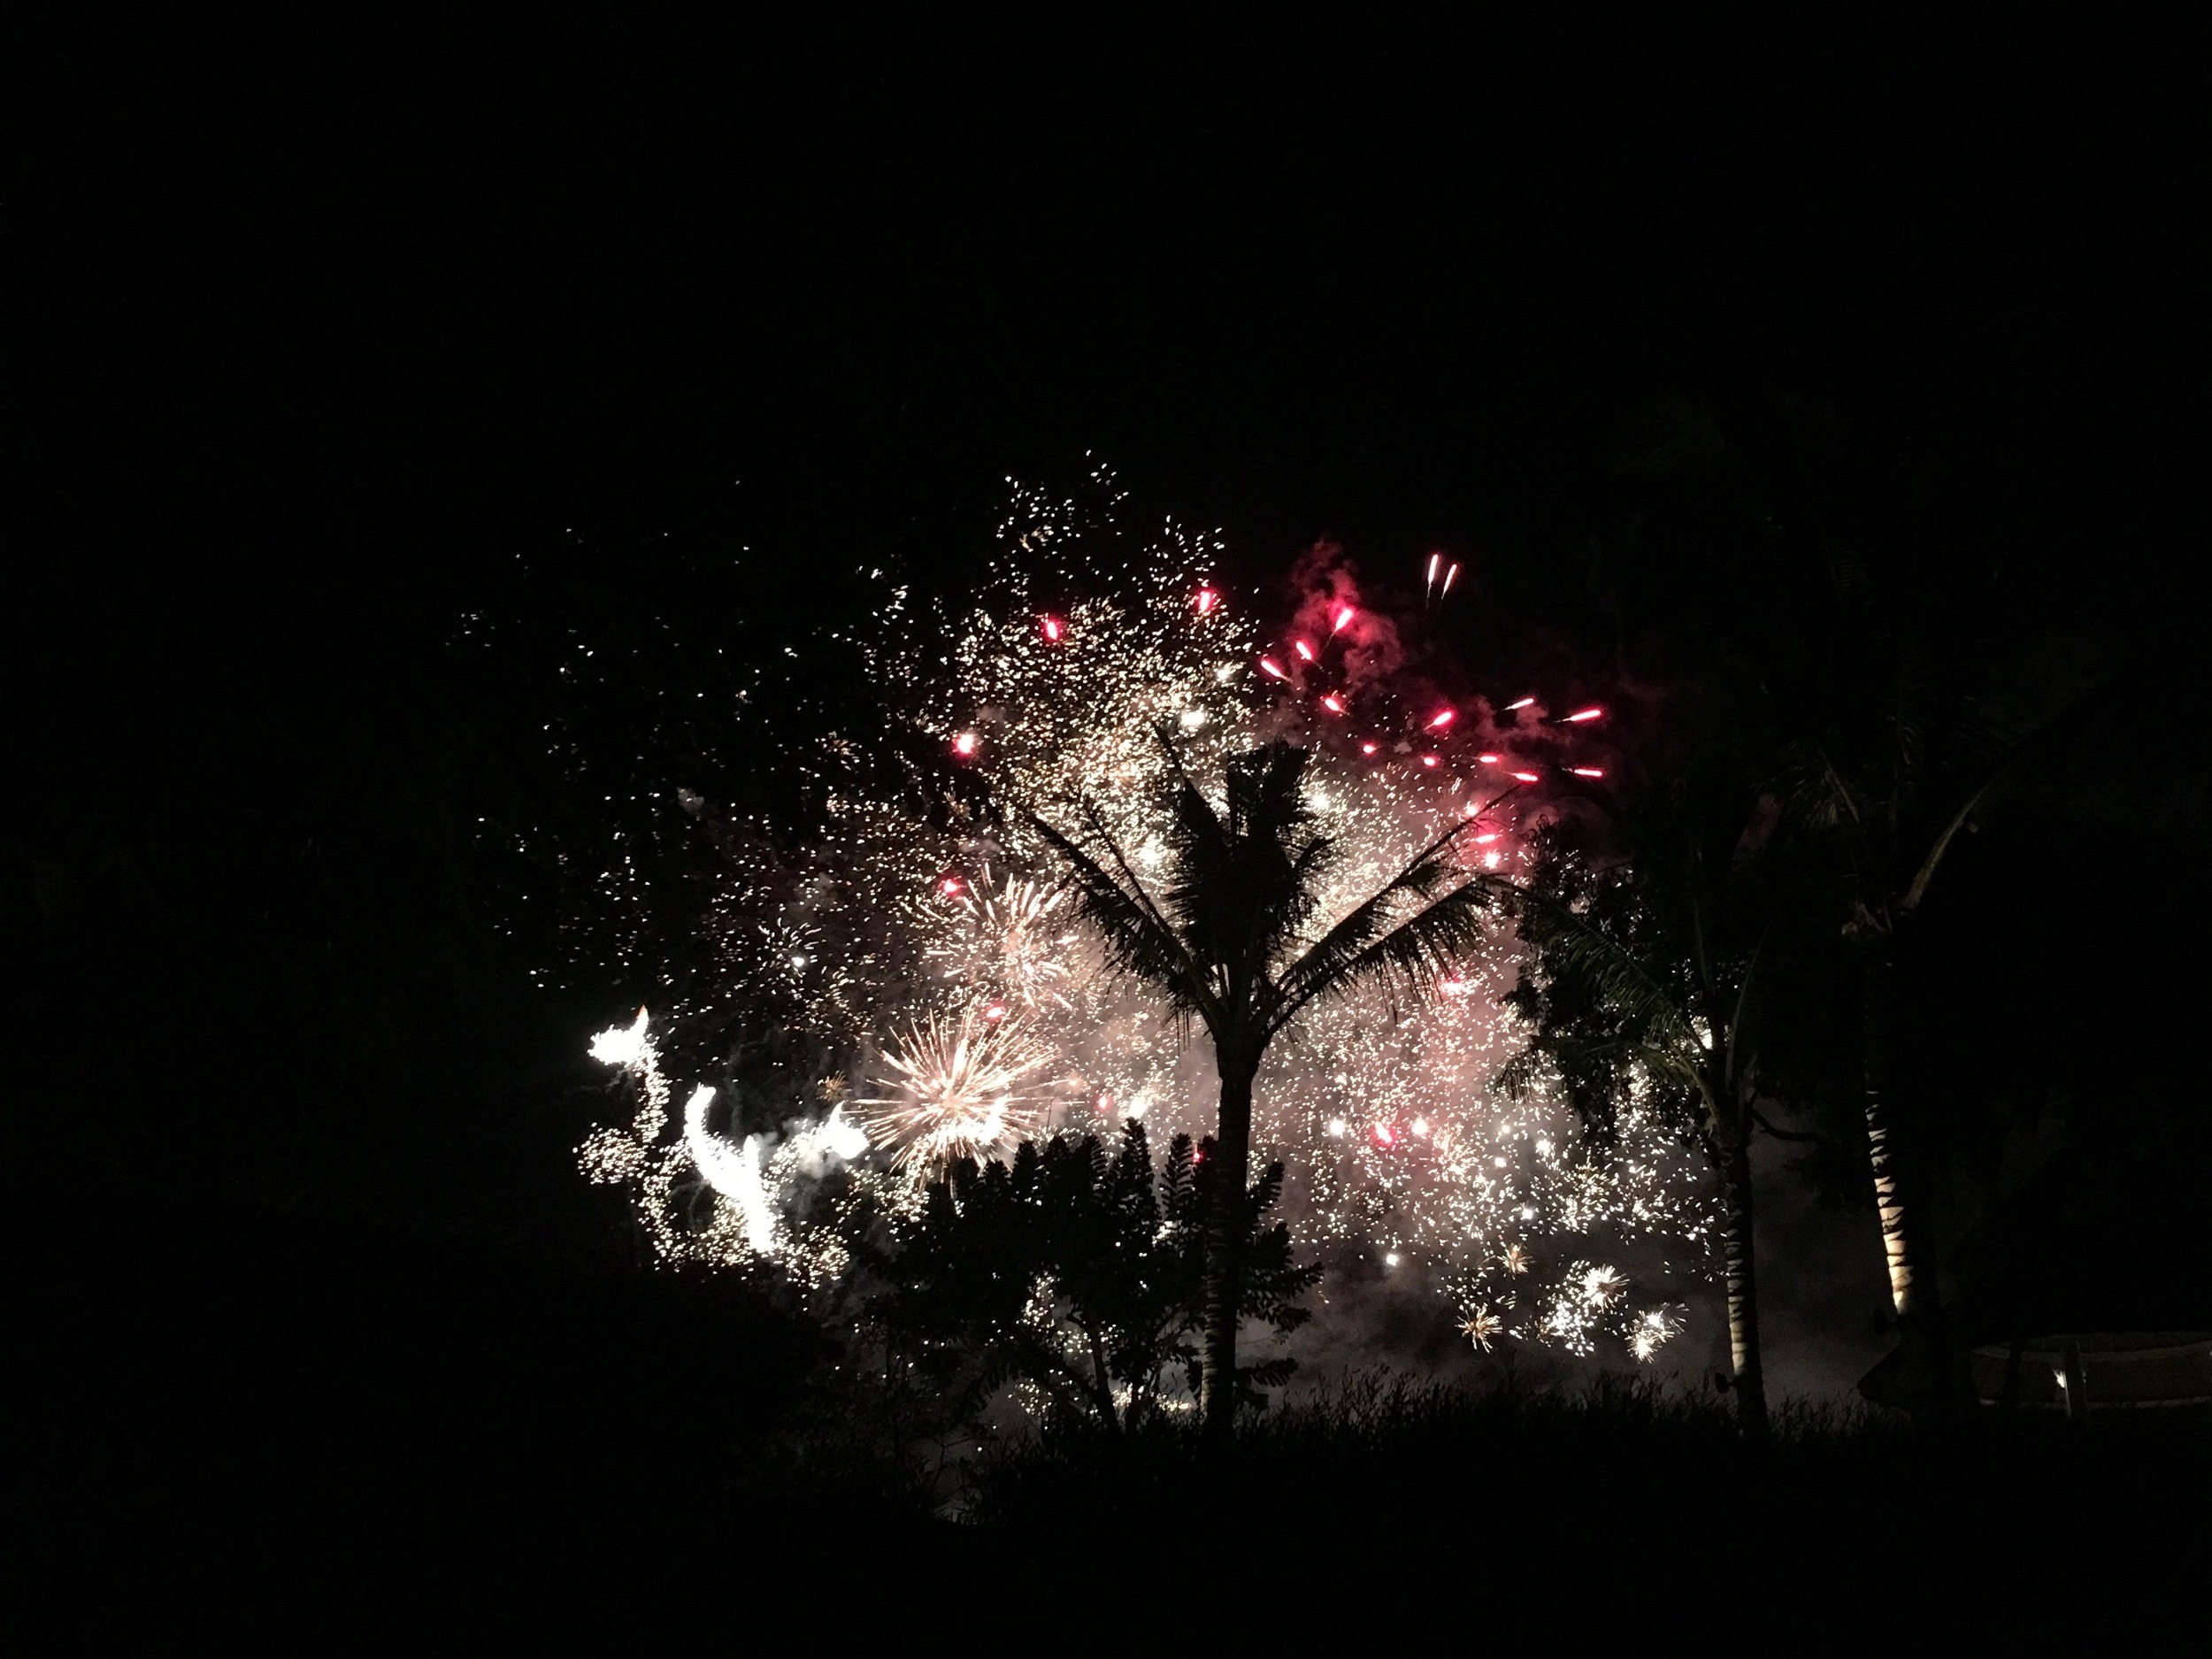 And the wedding ended in a fireworks display!